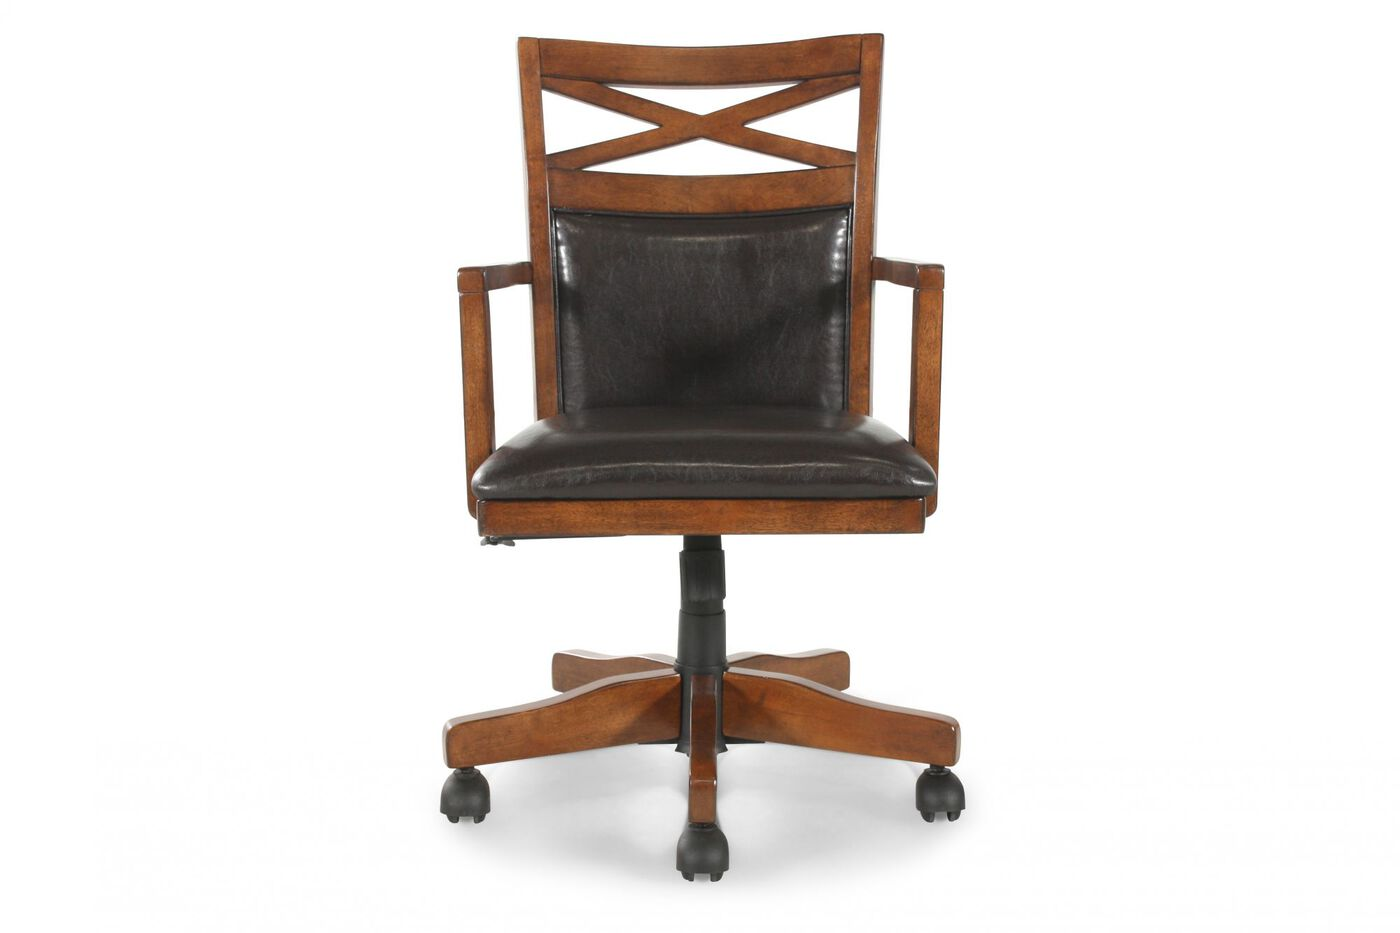 Ashley burkesville office chair mathis brothers furniture - Ashley furniture office desk ...